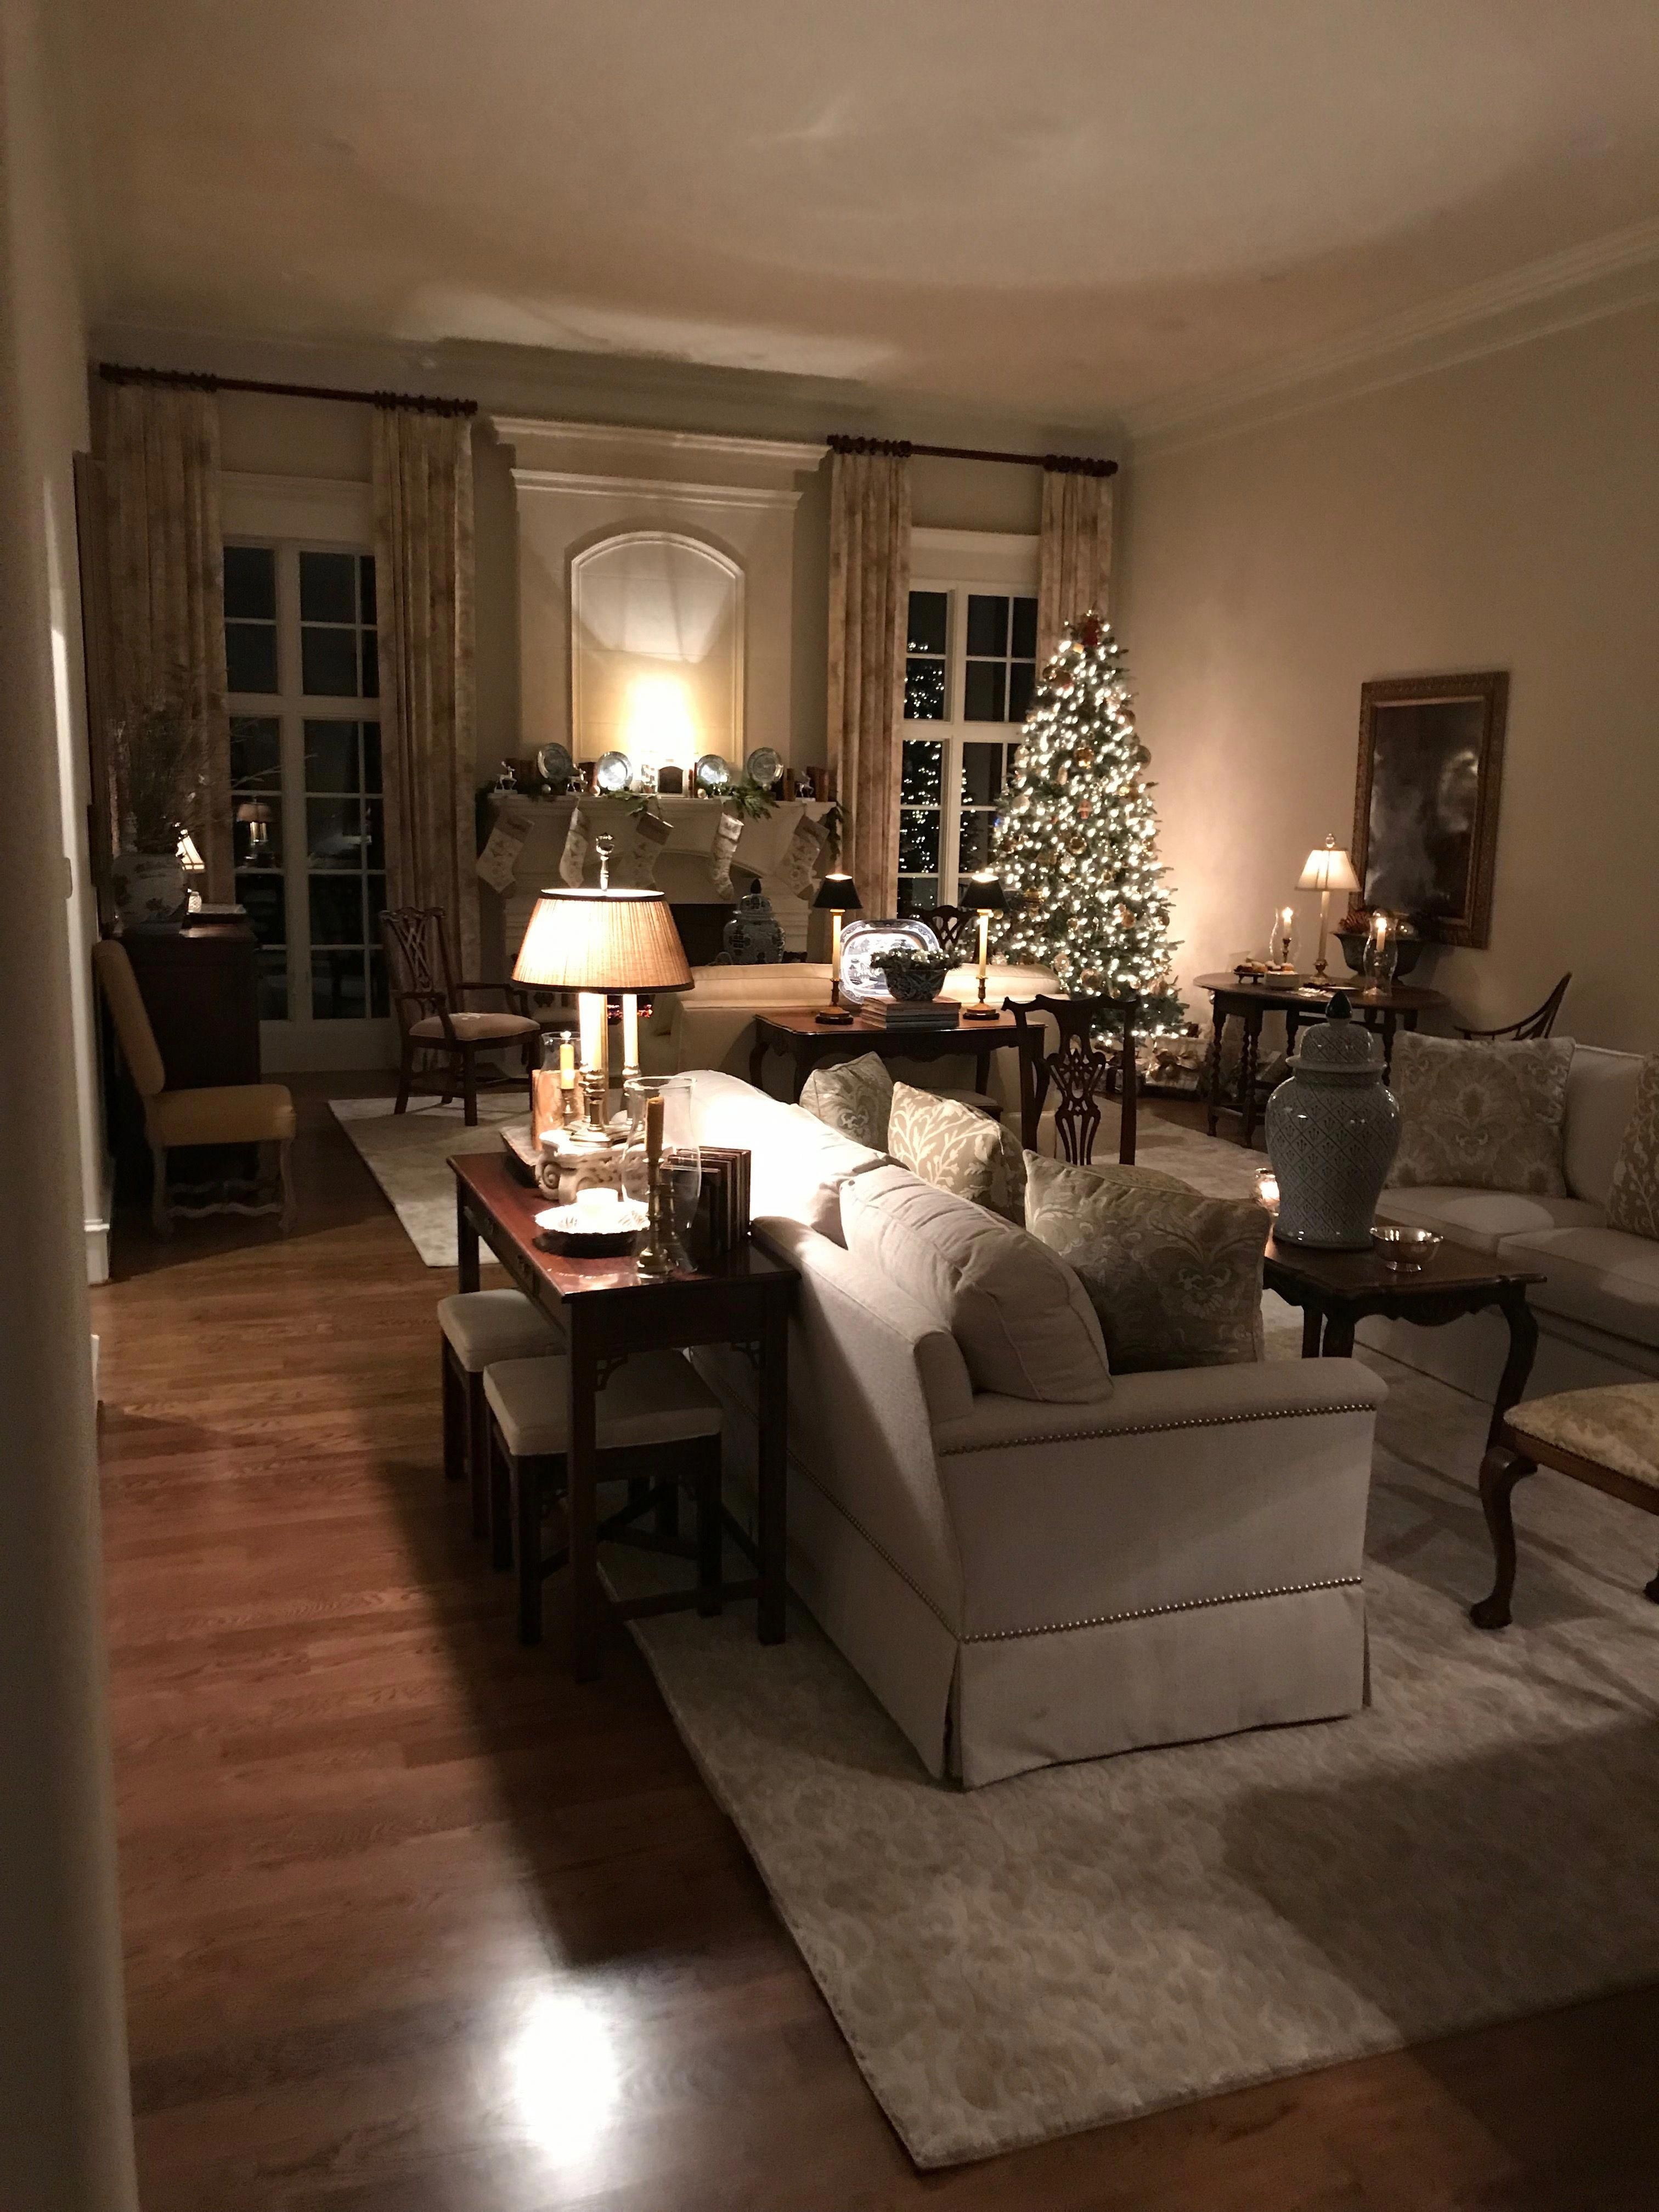 Living Room Night Decor And Please Those Windows Facing The Entrance And Road Luxurylivingroom Farm House Living Room Rustic Living Room Apartment Living Room